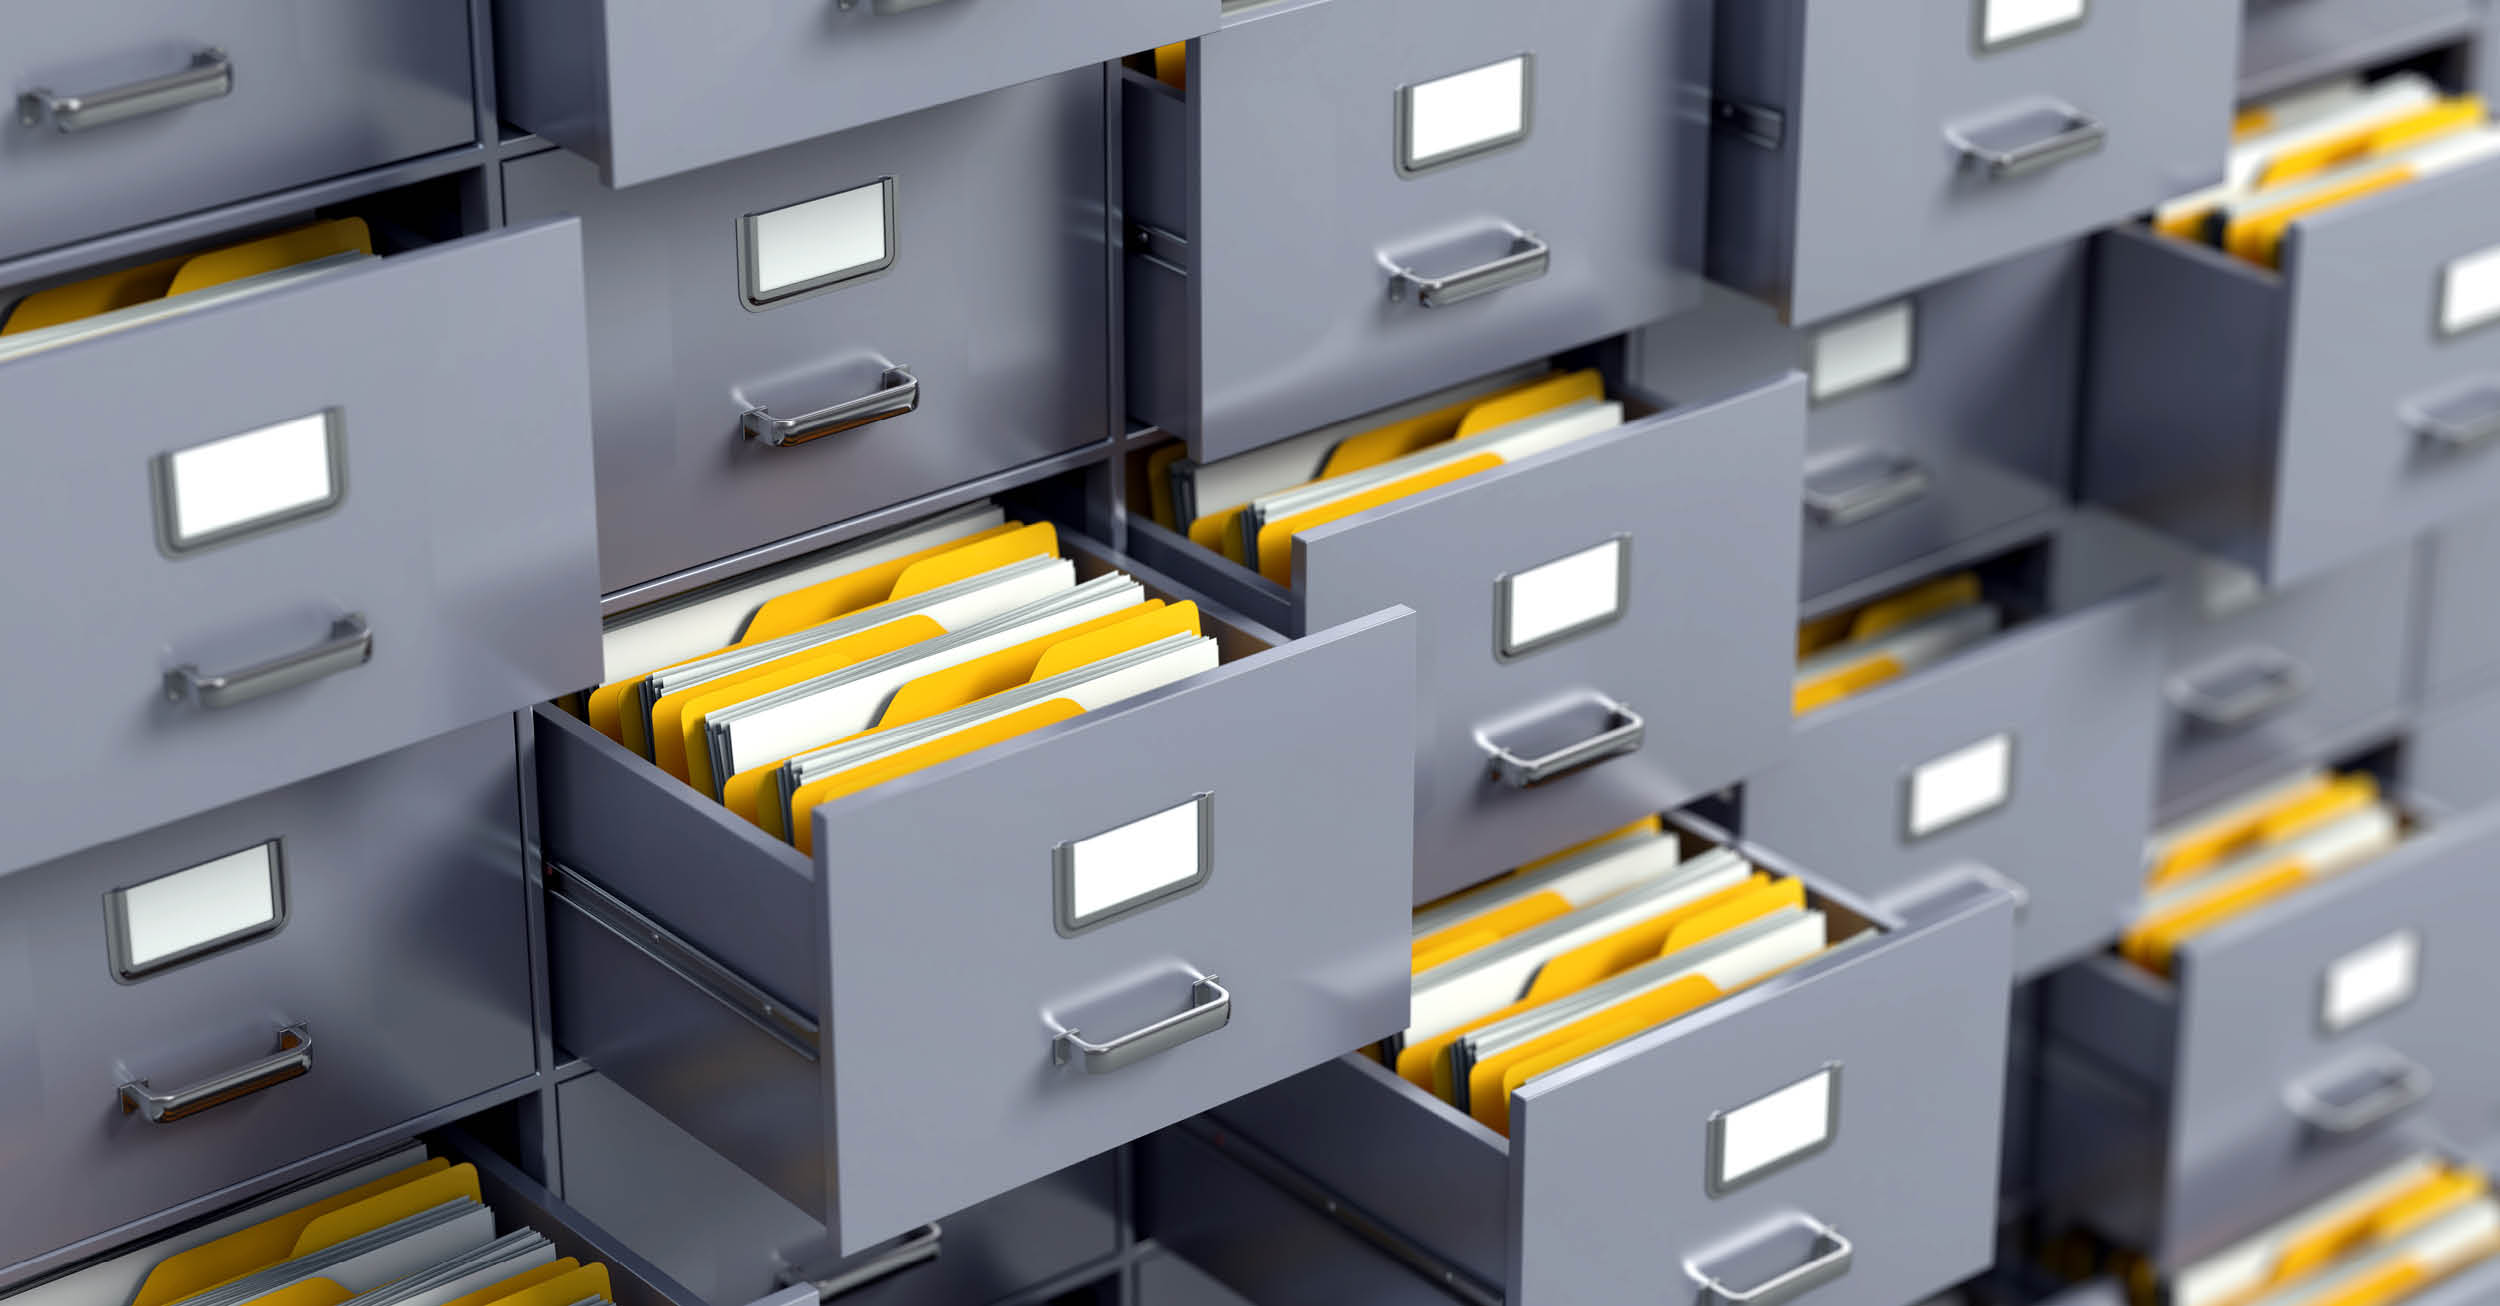 Several filing cabinets open and closed with documents showing